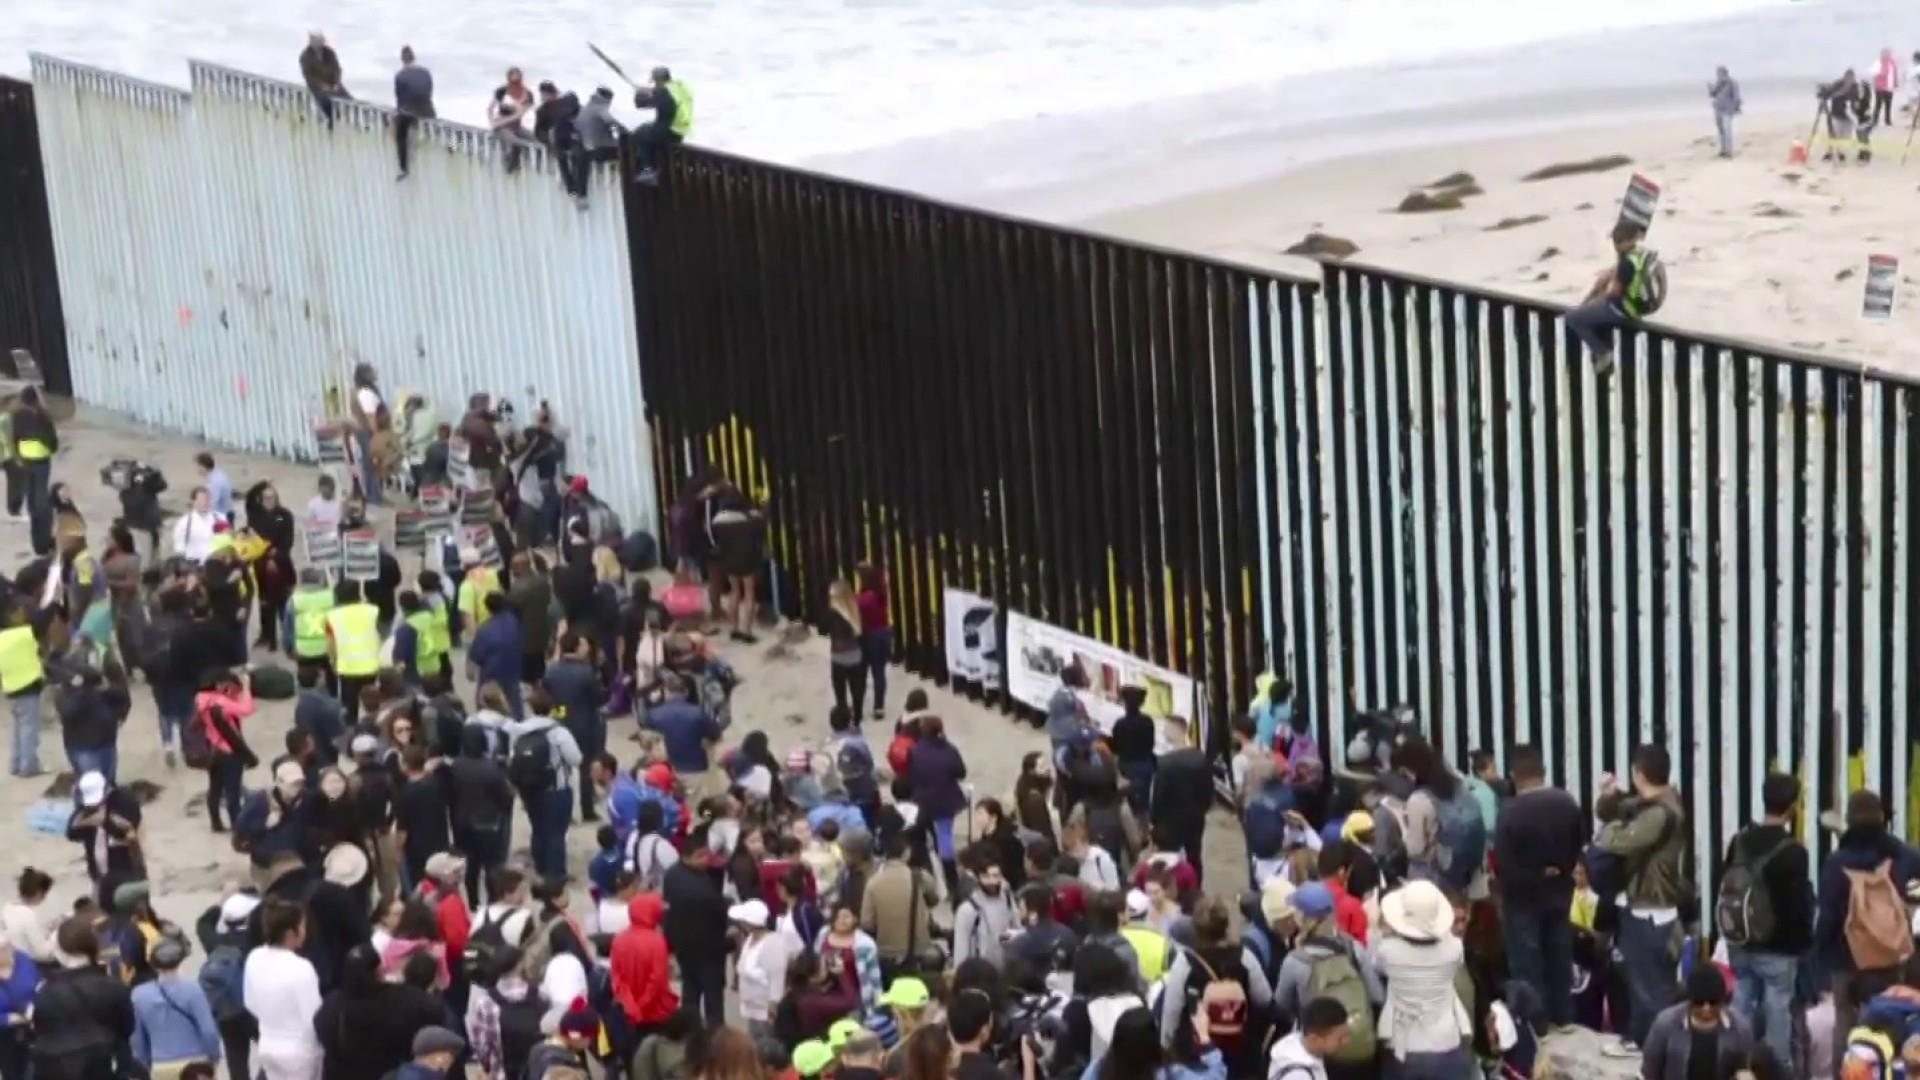 What force is driving the surge in migrants at the U.S. border?